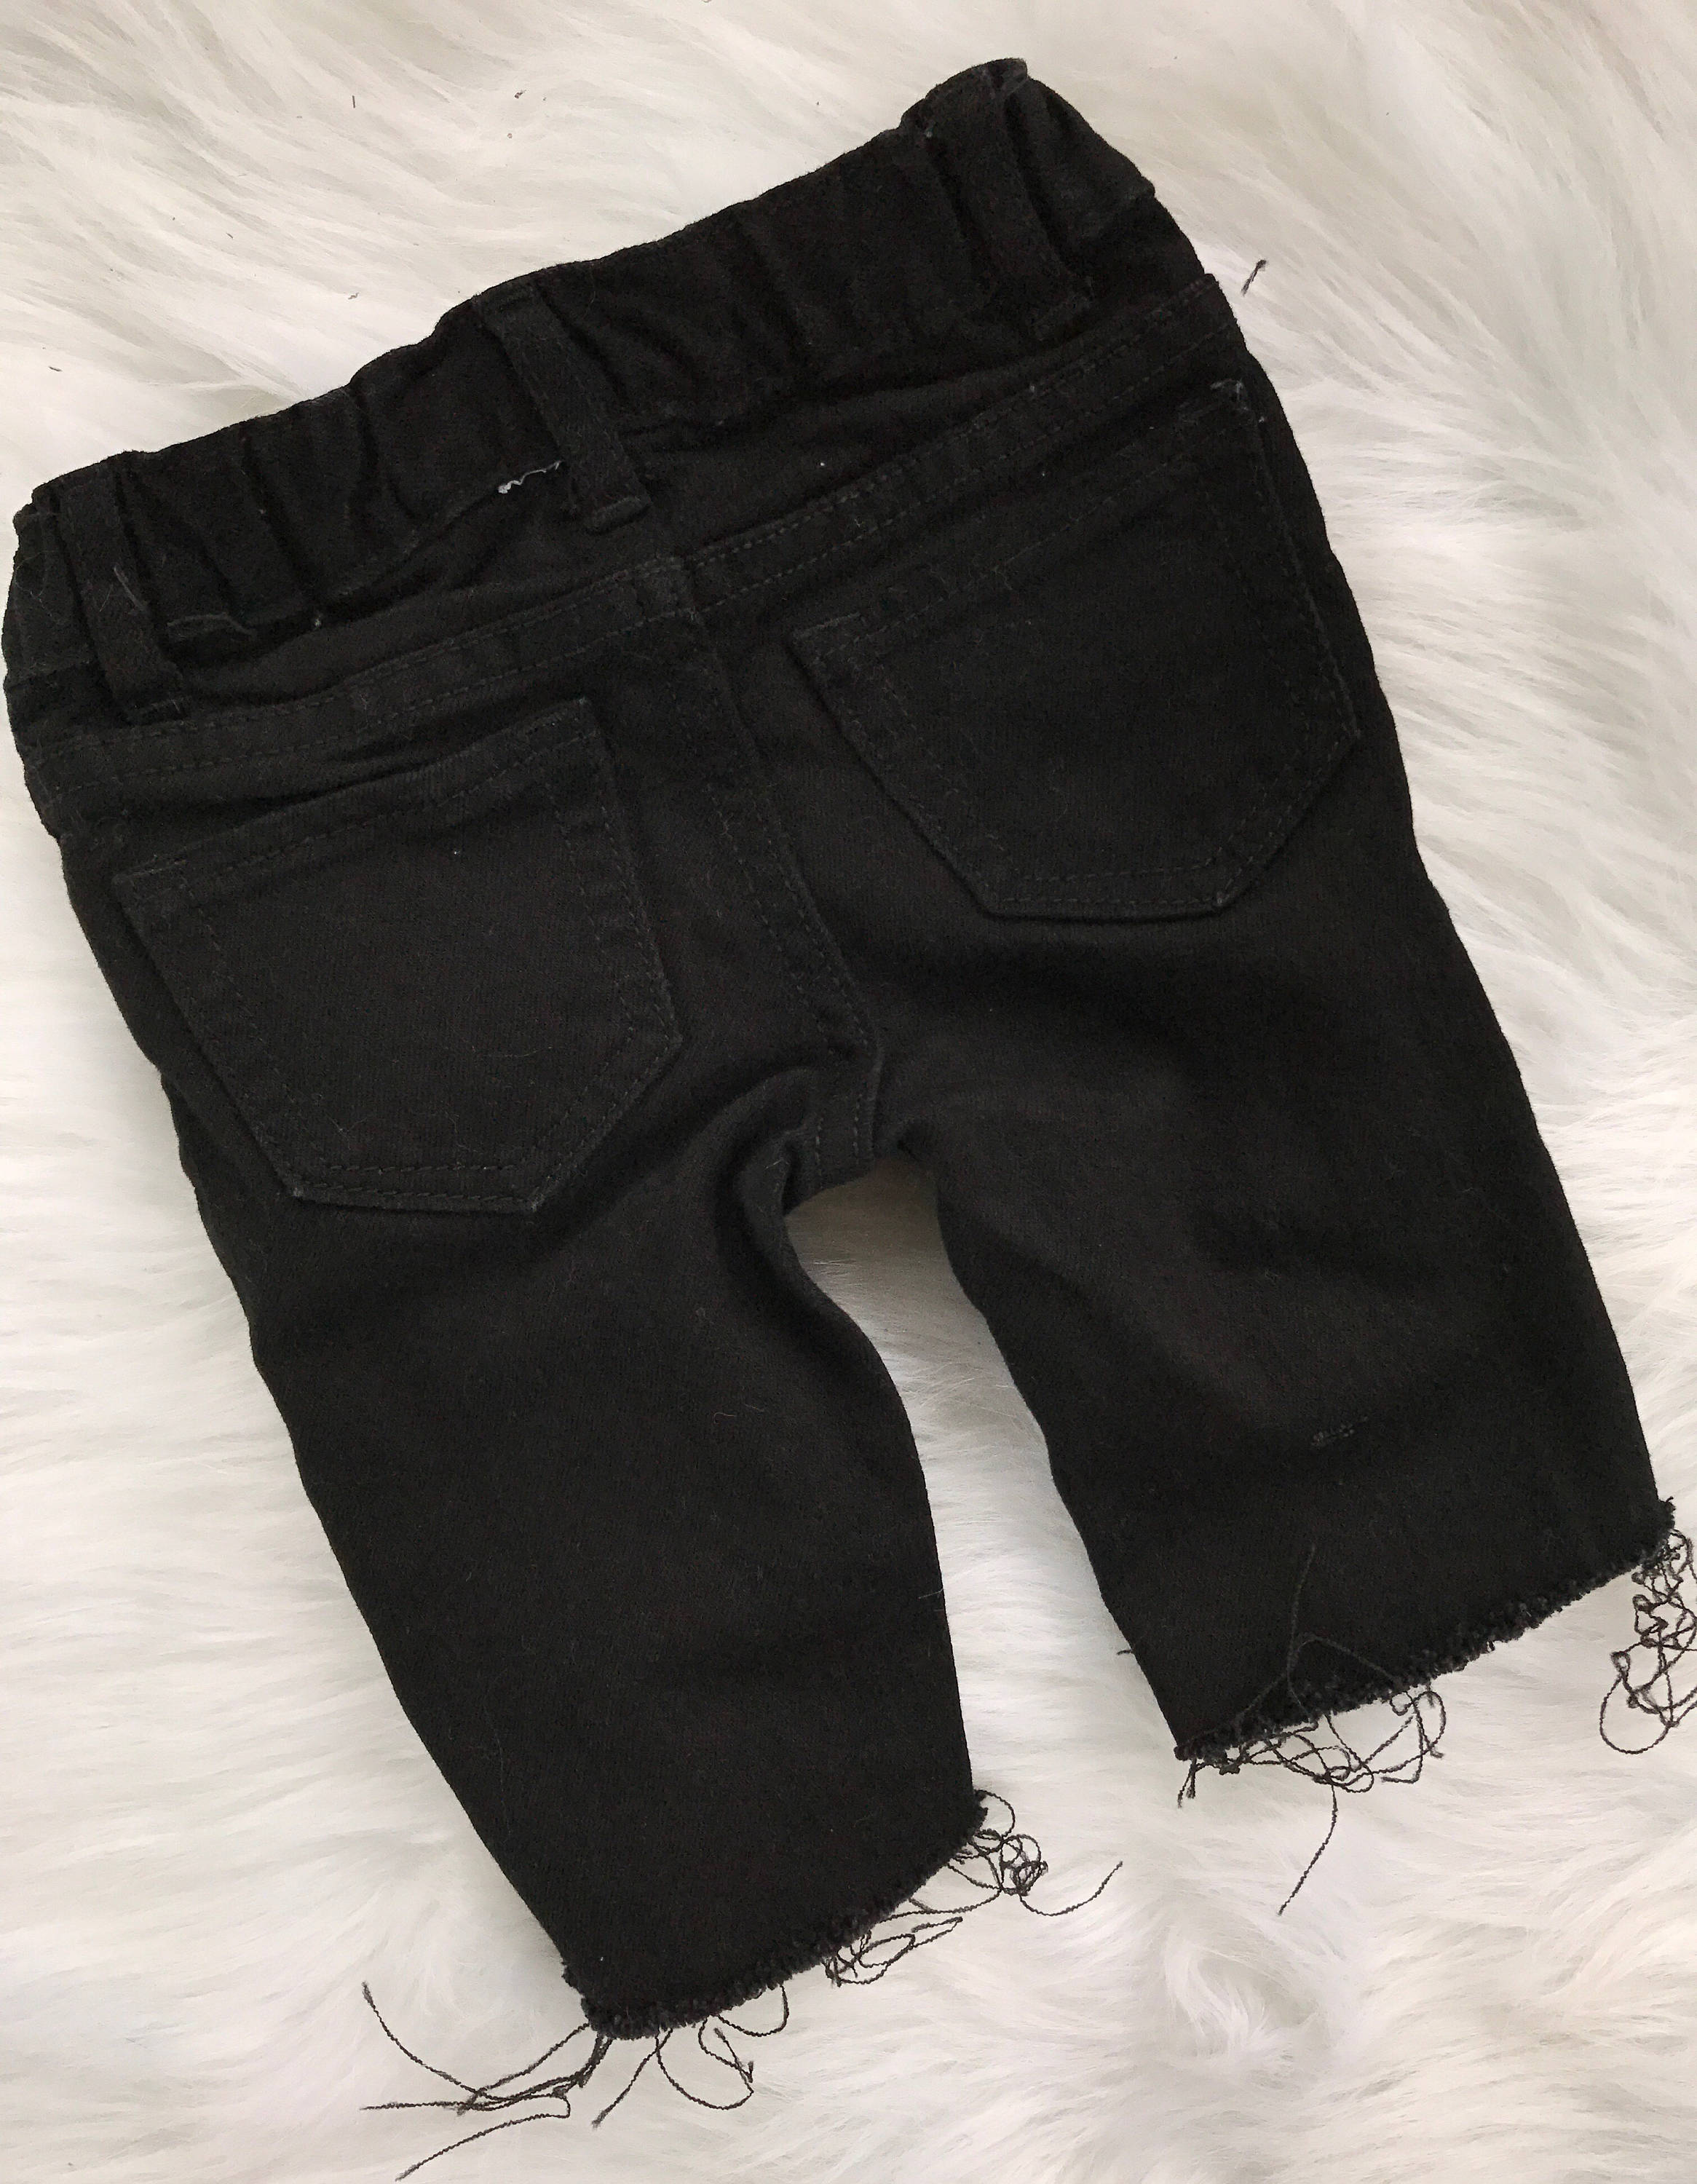 06f86ec0e7c MISFITS baby boy girl unisex toddler black distressed destroyed  deconstructed ripped studded skinny denim jeans shorts